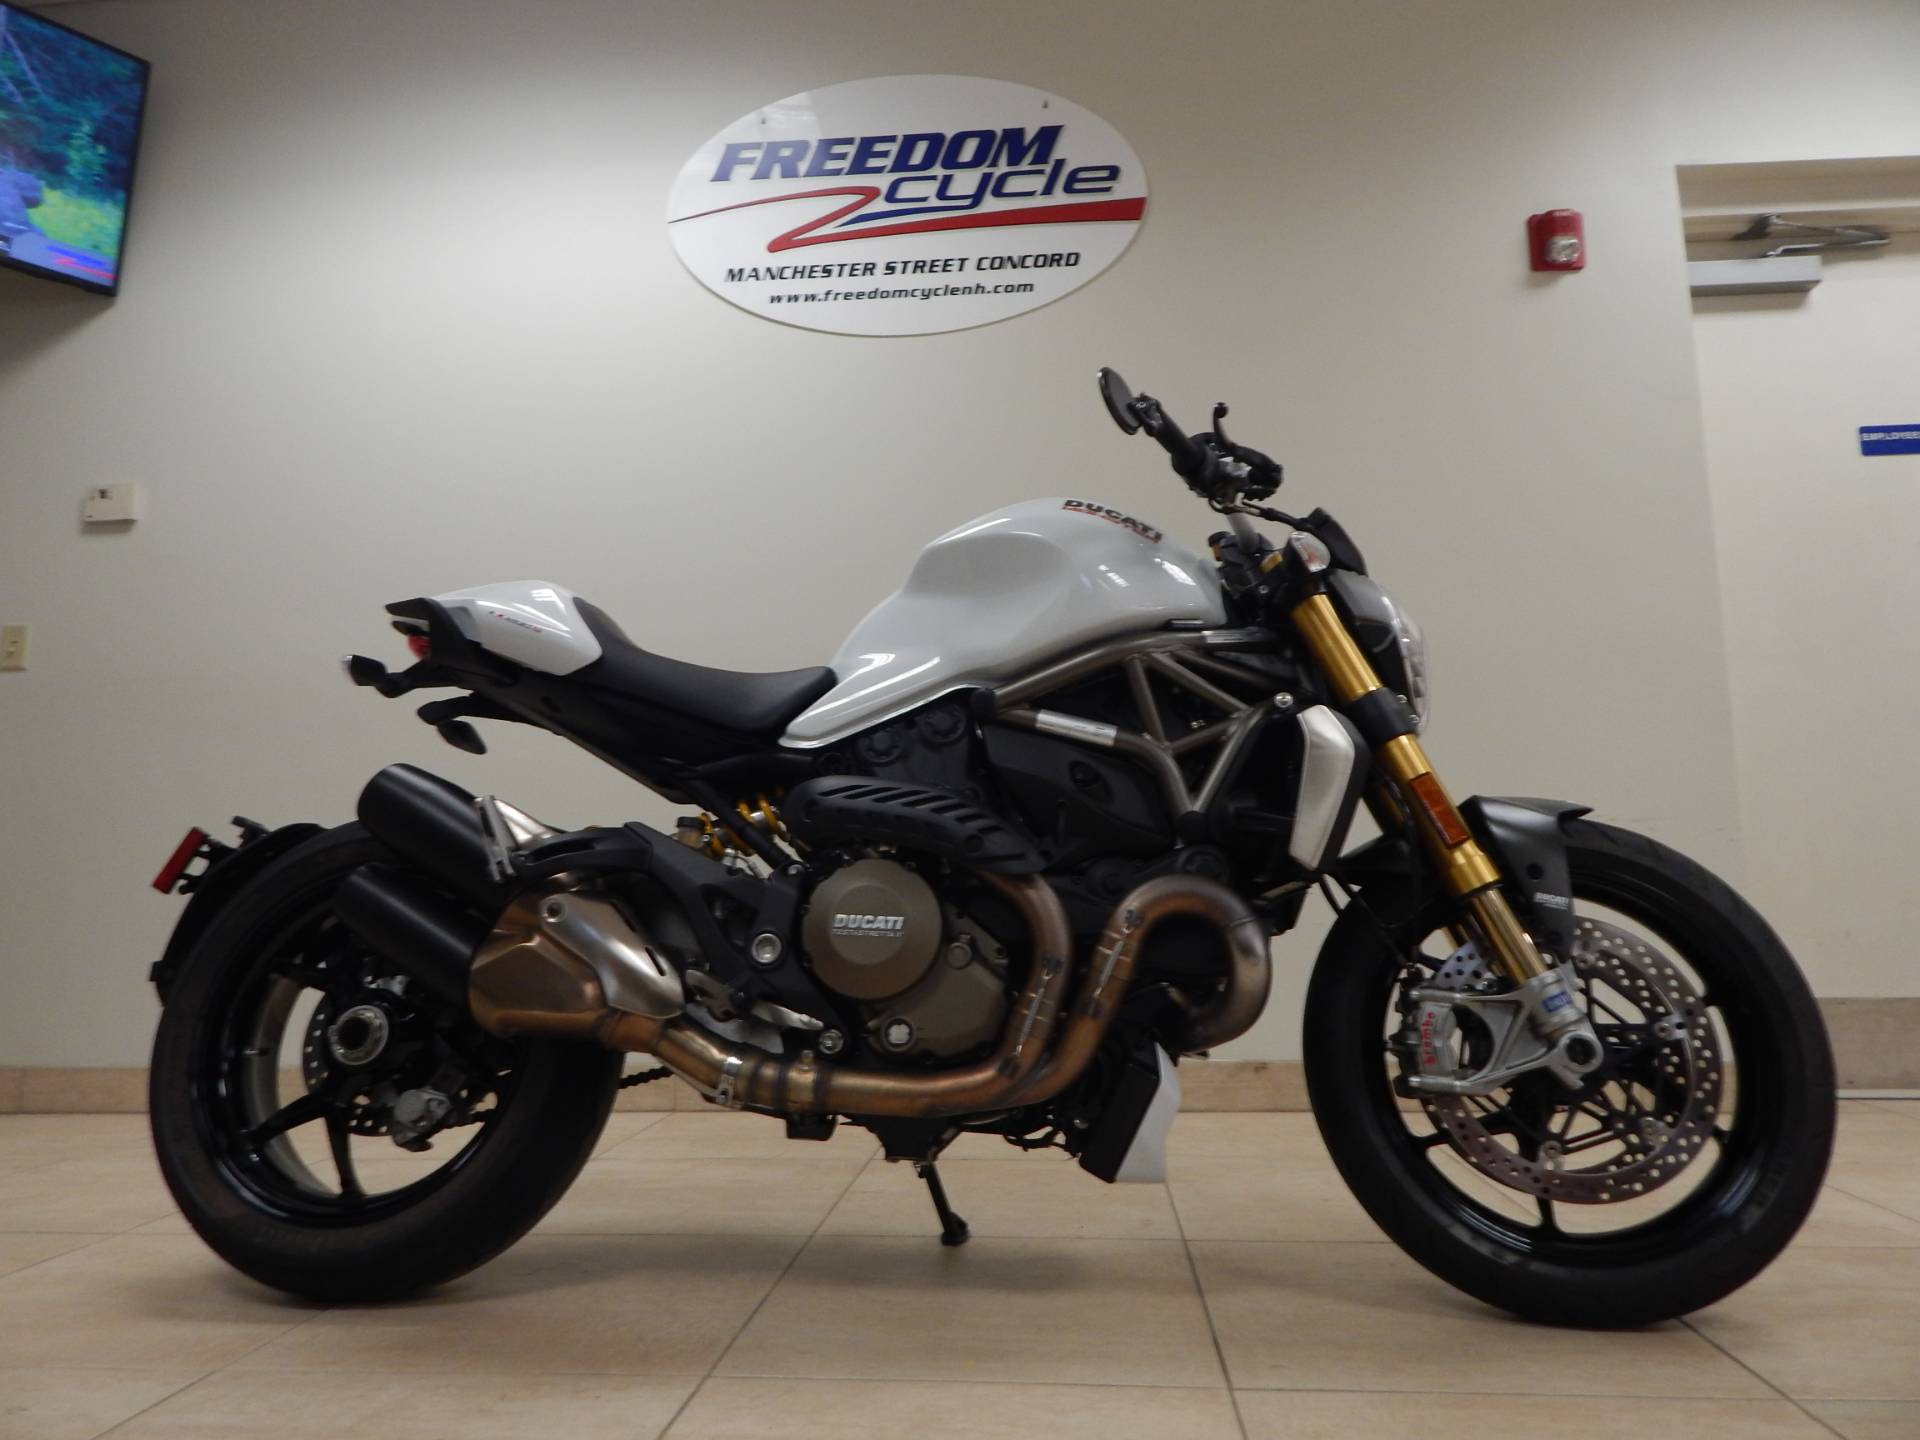 2015 Ducati Monster 1200 S in Concord, New Hampshire - Photo 6